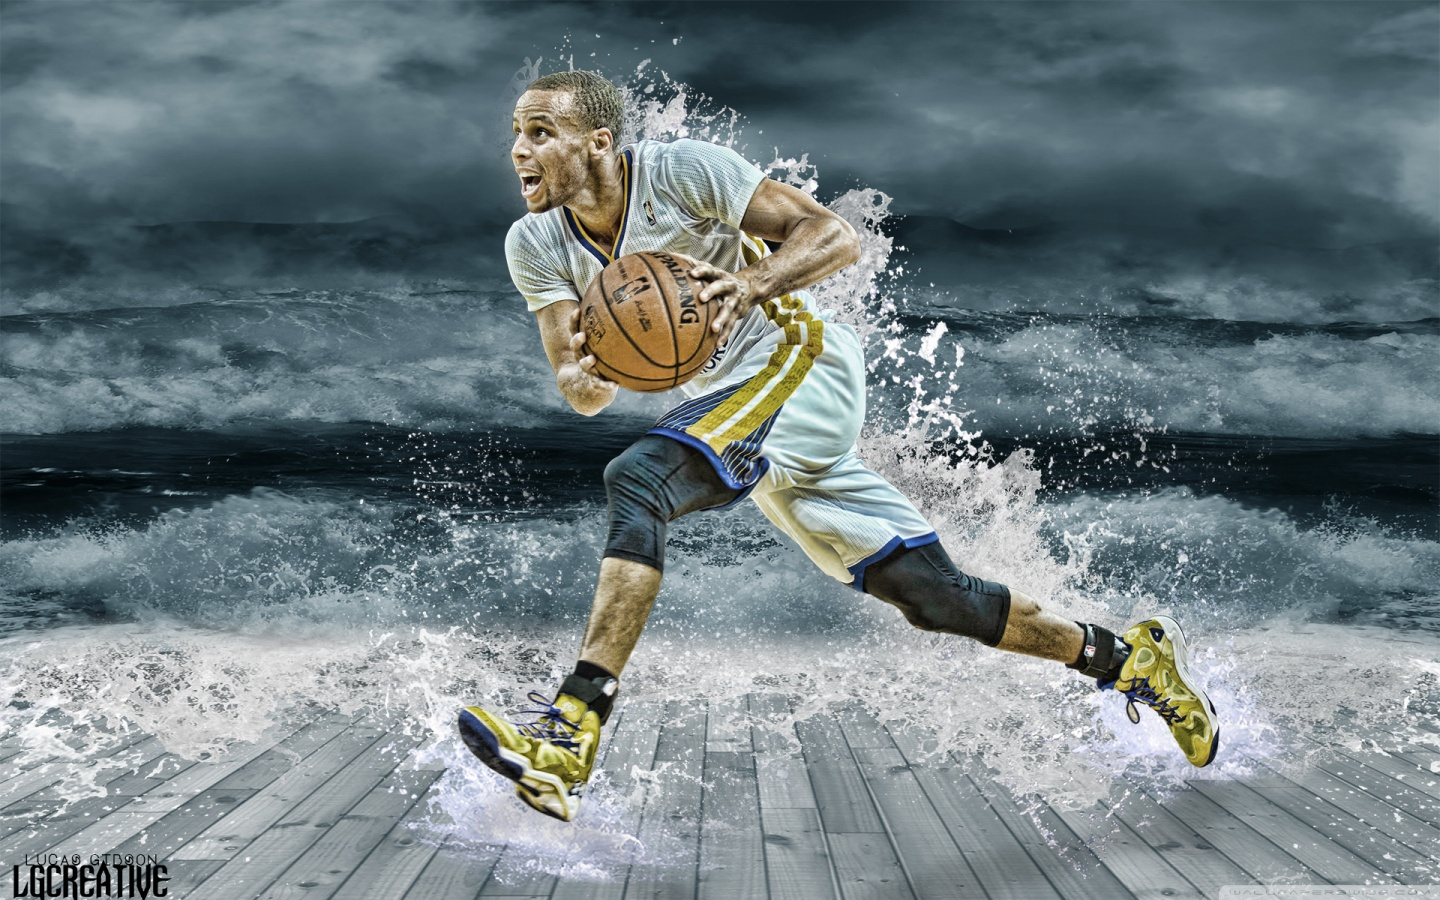 Stephen Curry Splash Wallpaper The Art Mad Wallpapers 1440x900